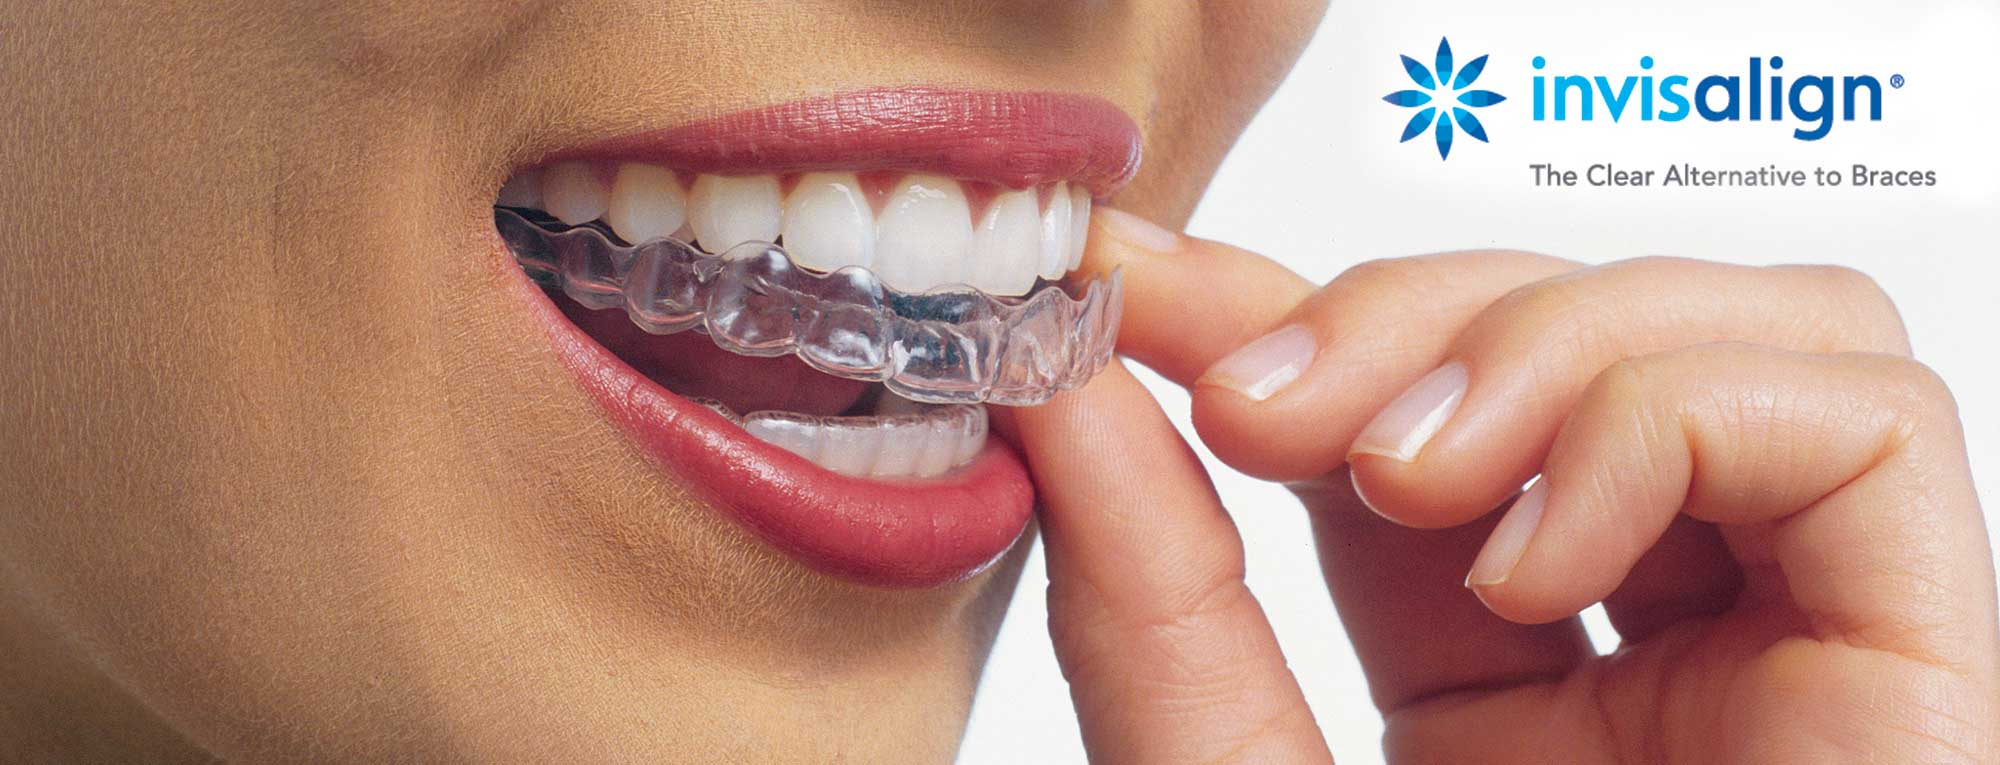 Invisalign-clearalternative